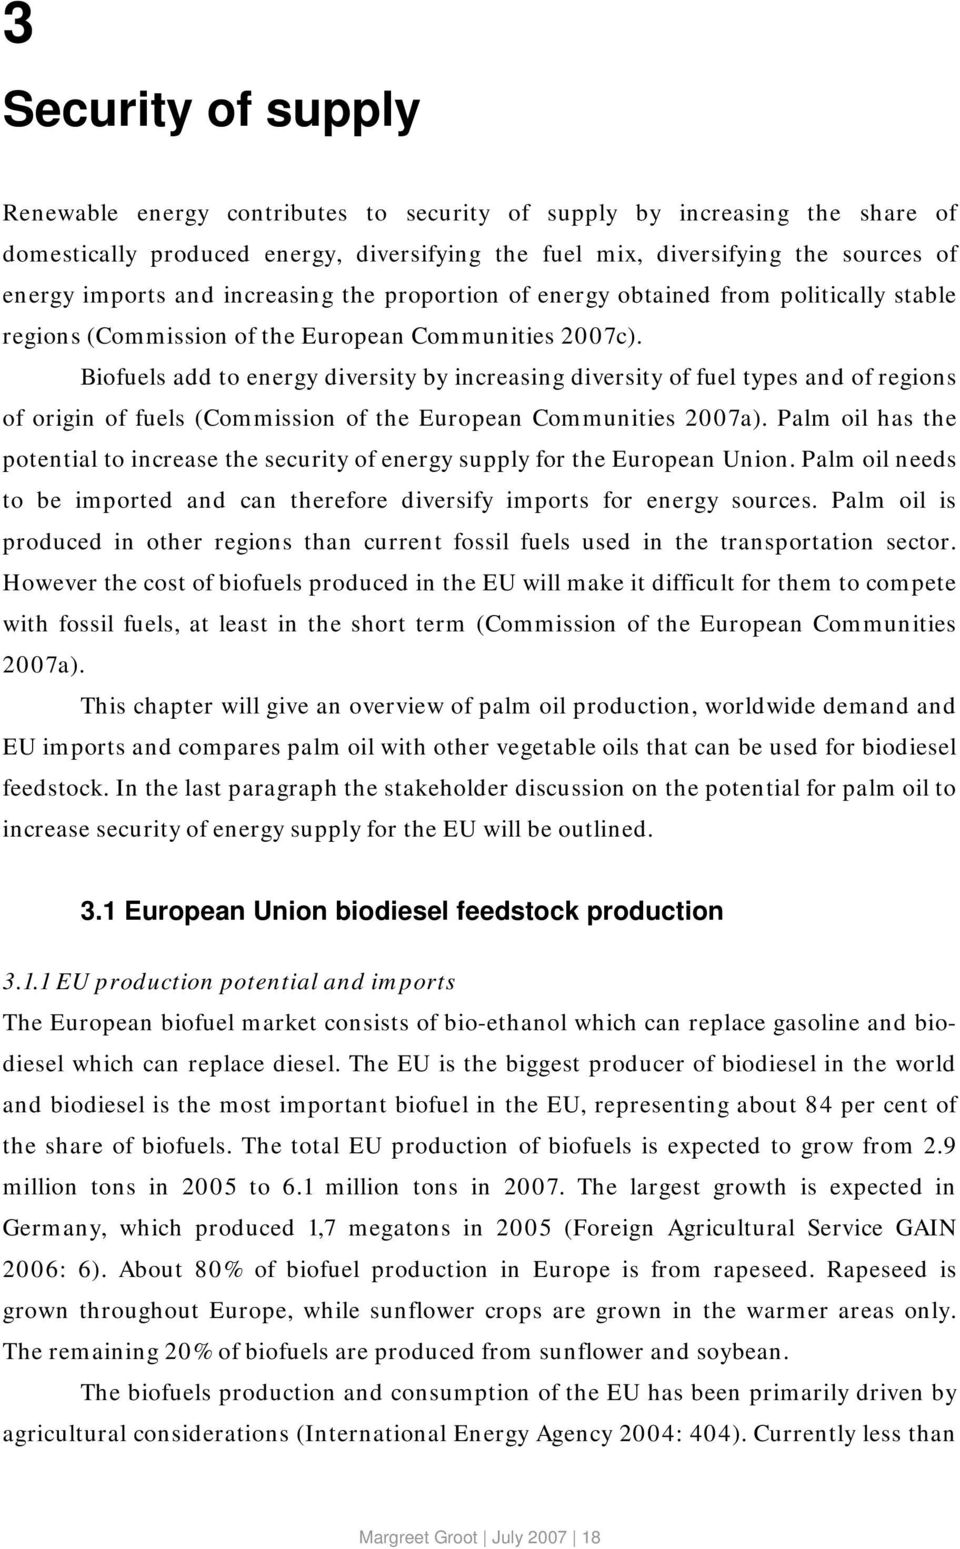 Biofuels add to energy diversity by increasing diversity of fuel types and of regions of origin of fuels (Commission of the European Communities 2007a).